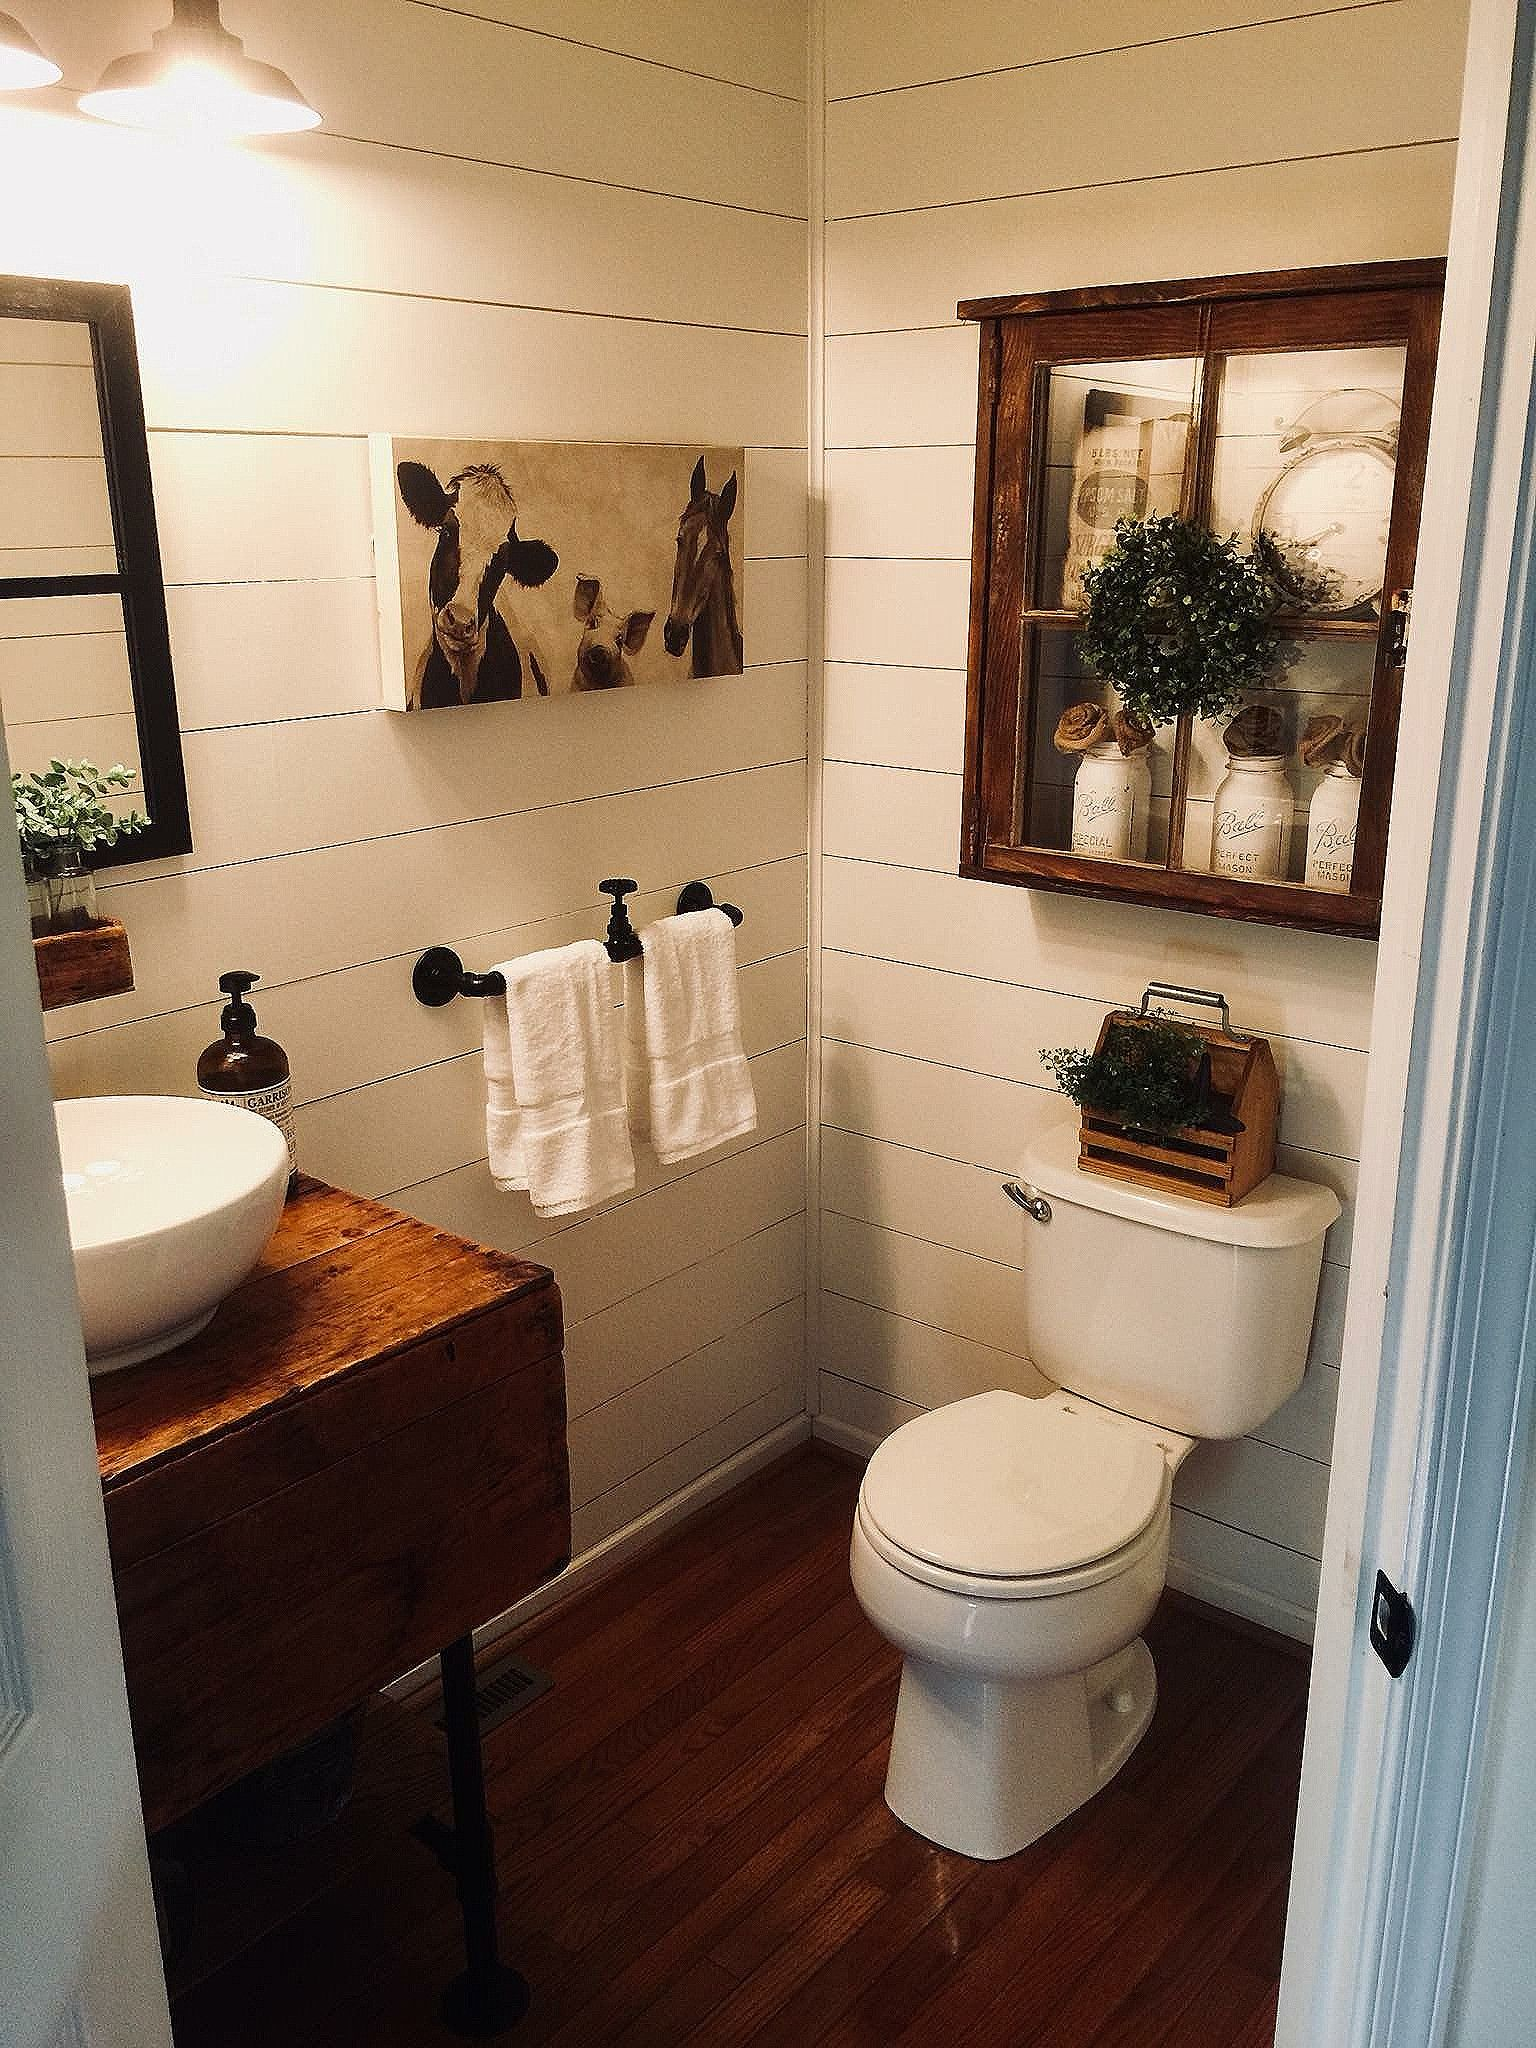 Awesome Bathroom Designs Pinterest -   Small rustic ... on Small Space Small Bathroom Ideas Pinterest id=95113